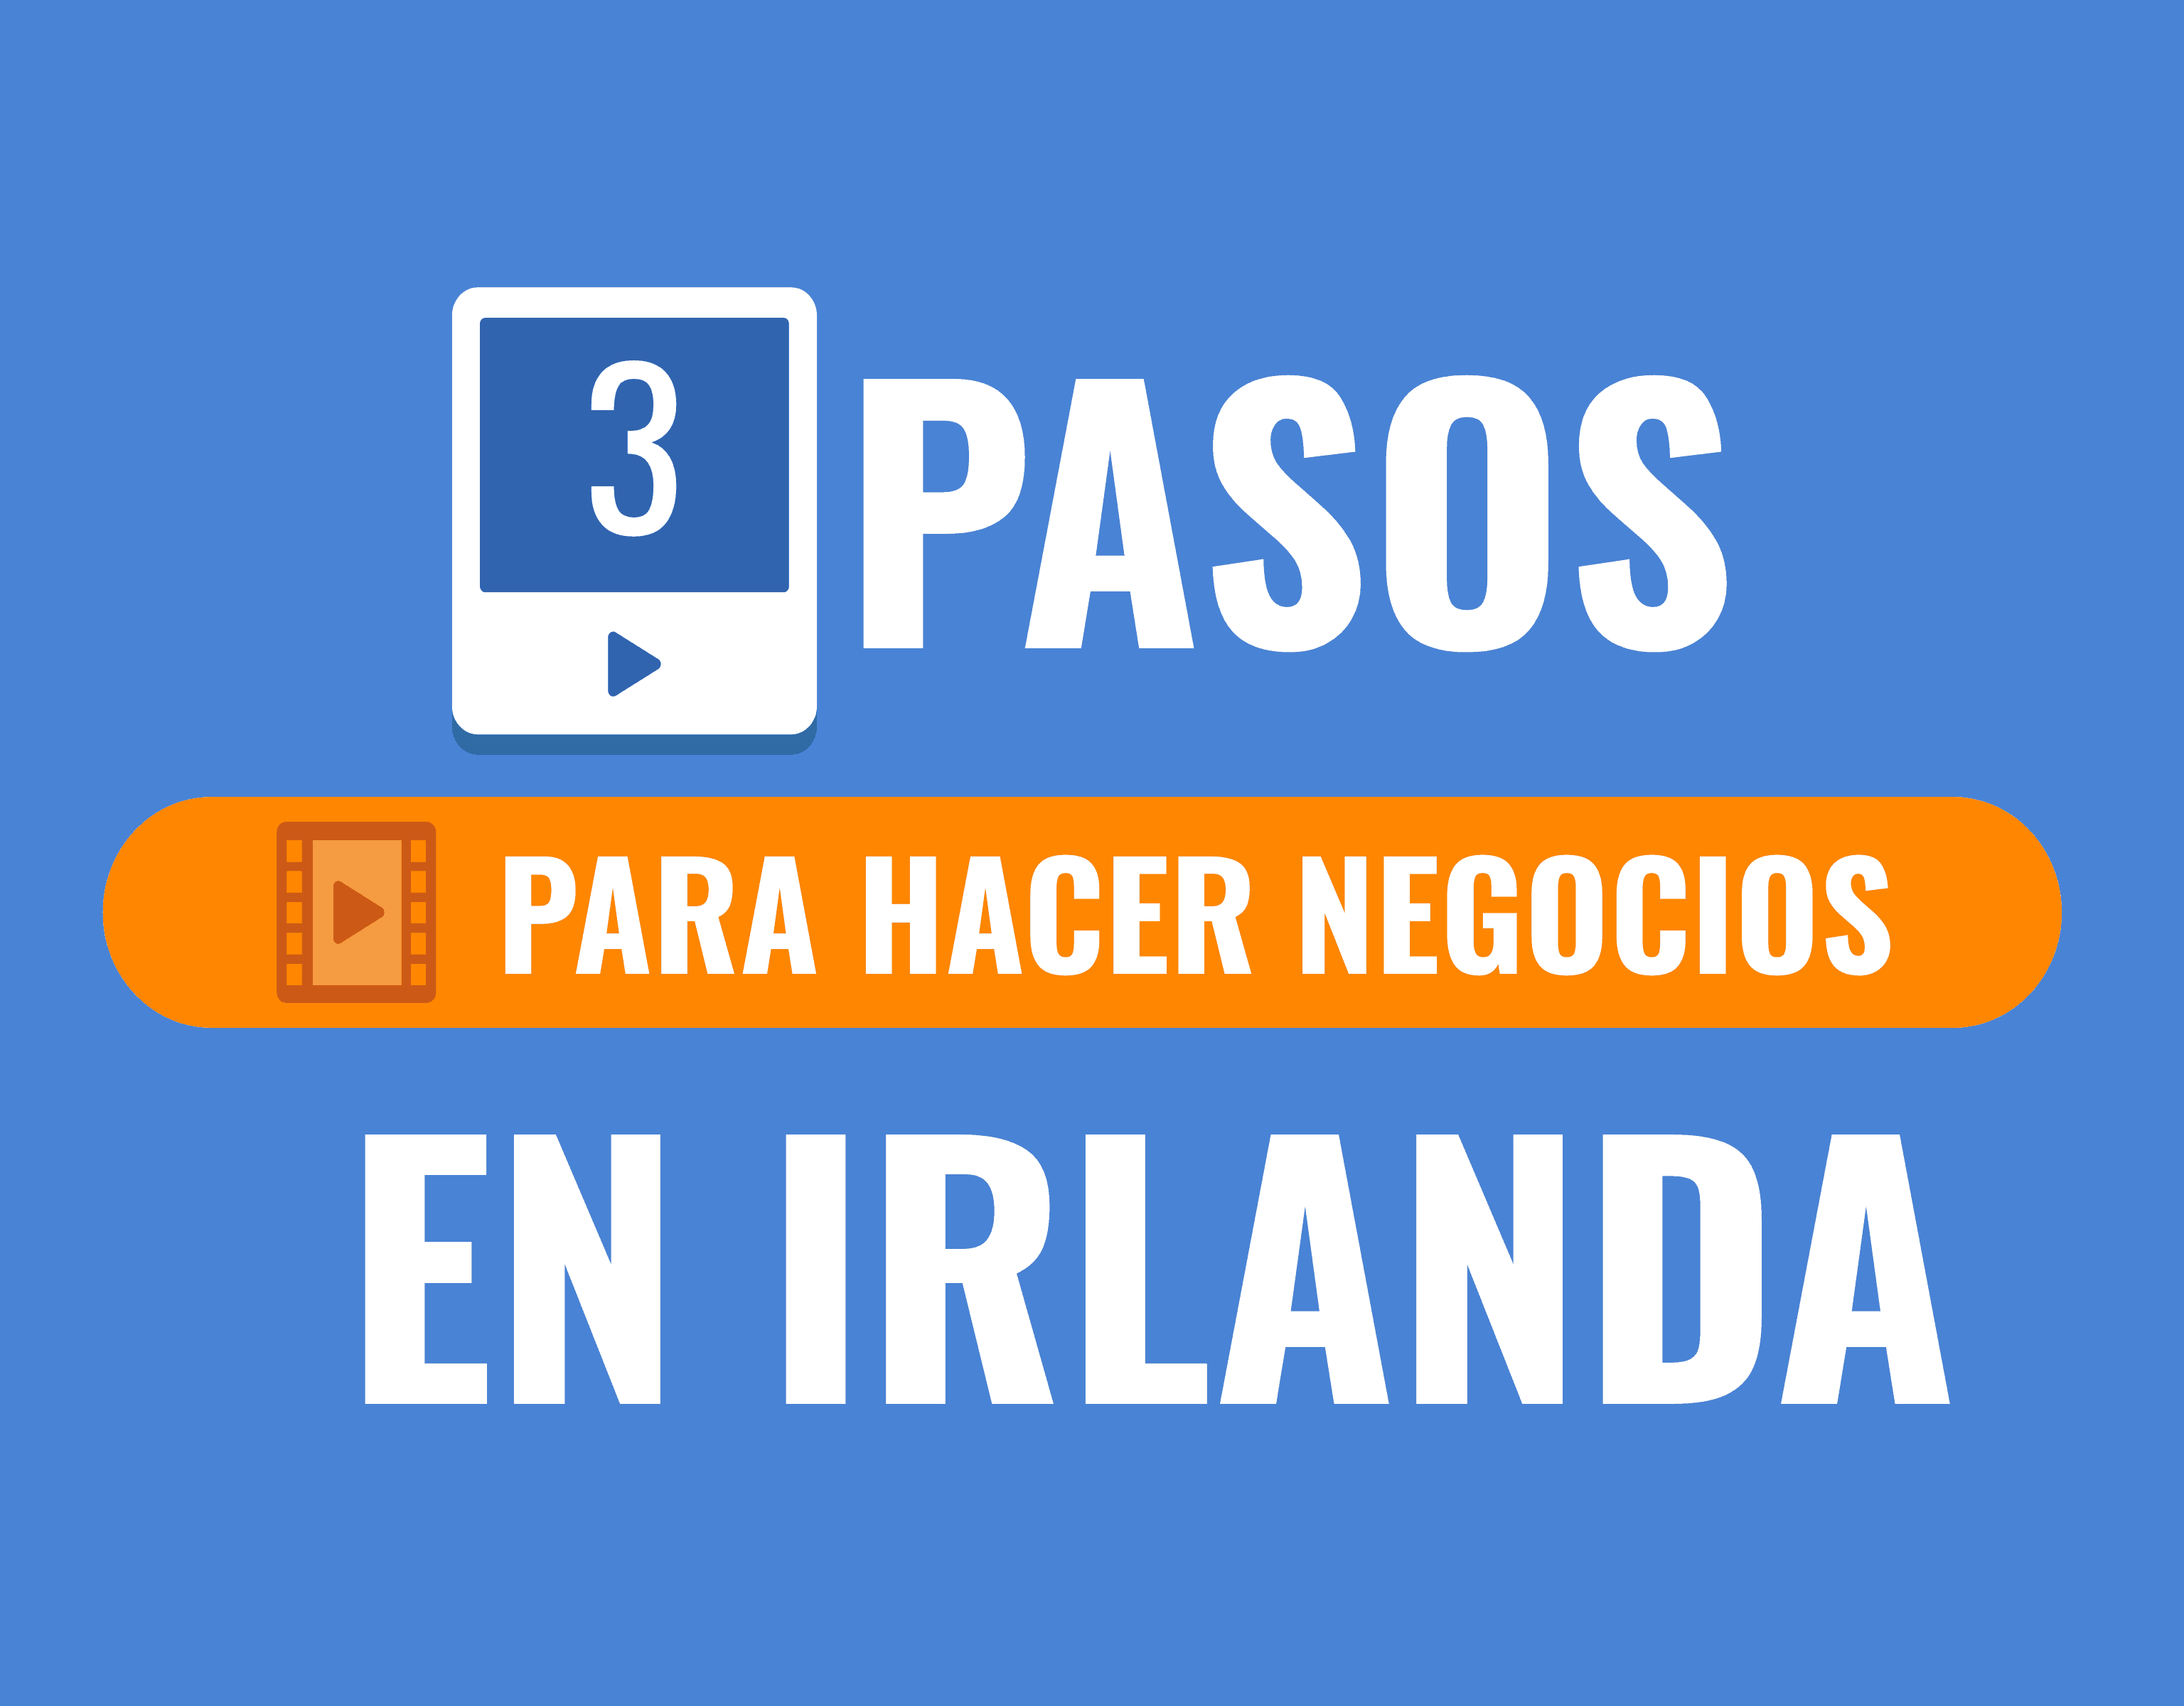 3 Pasos para Hacer Negocios en Irlanda - How to make a business in Ireland